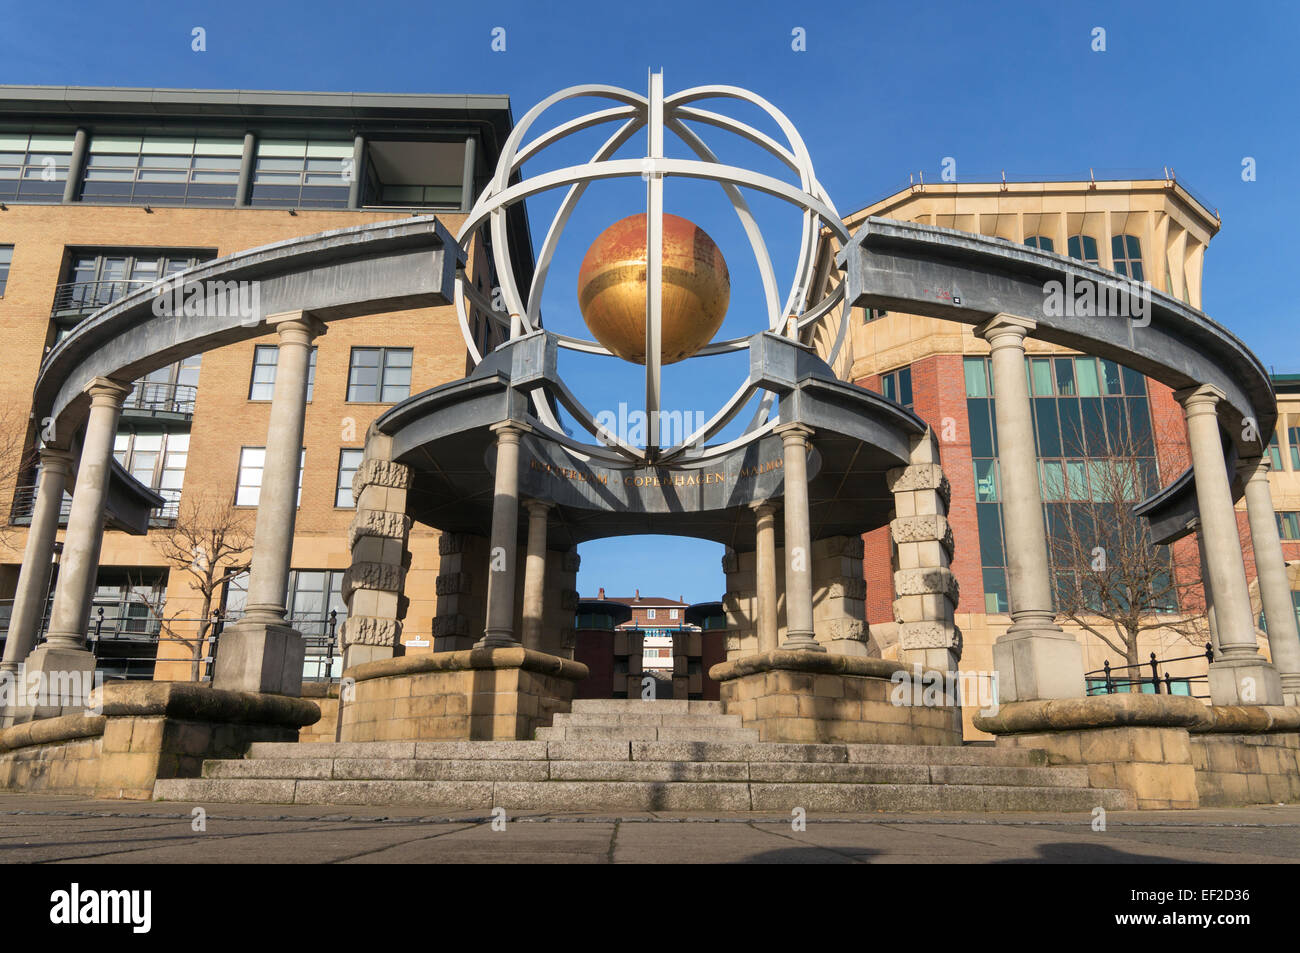 The Swirle Pavilion on the quayside at Newcastle upon Tyne north east England UK - Stock Image